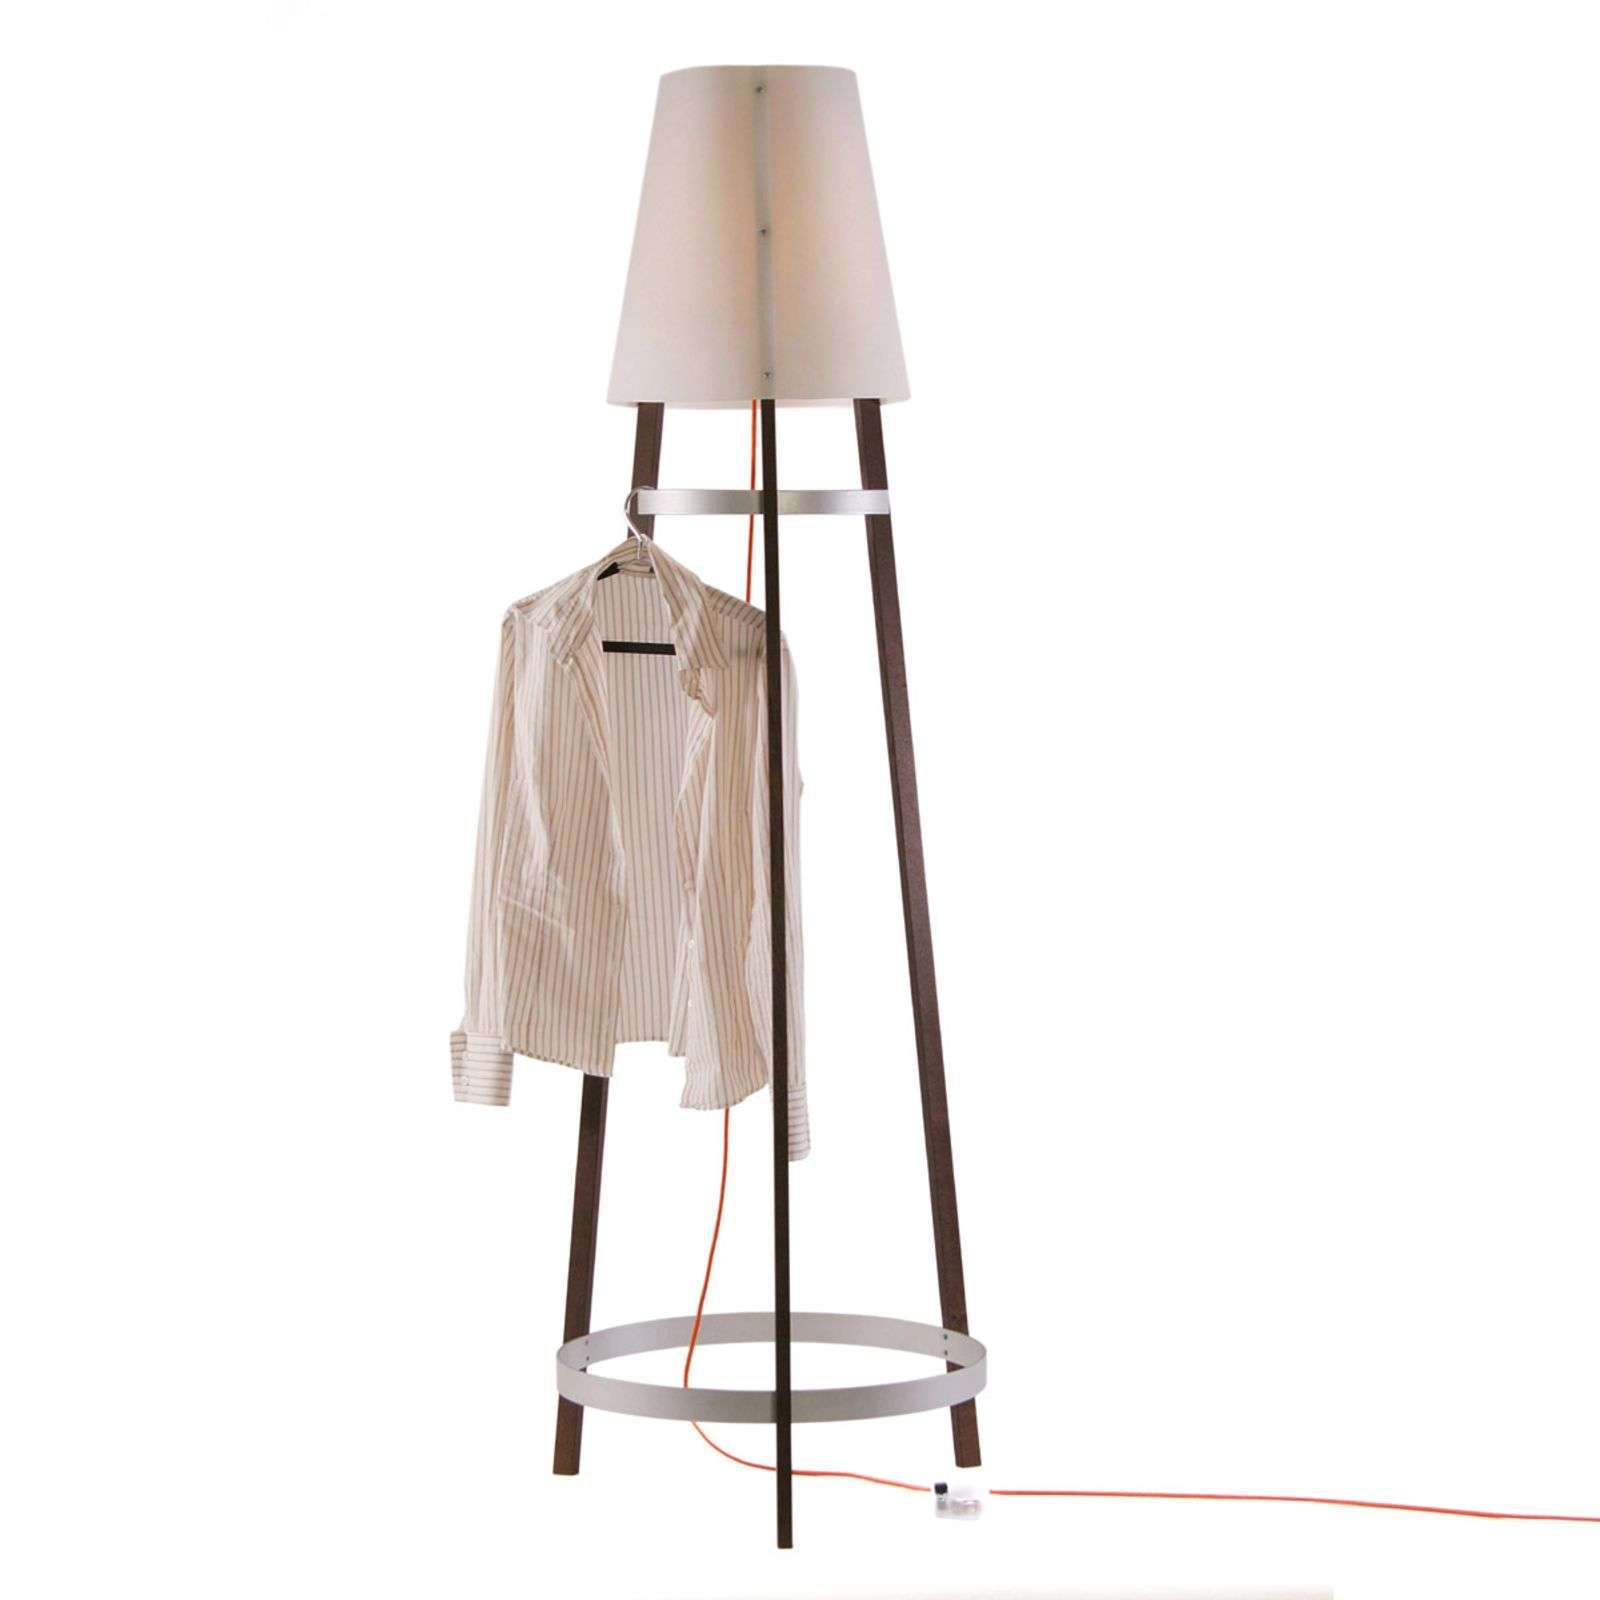 Stehleuchte Wai Ting Kabel Rot Eiche Avec Images Lampadaire